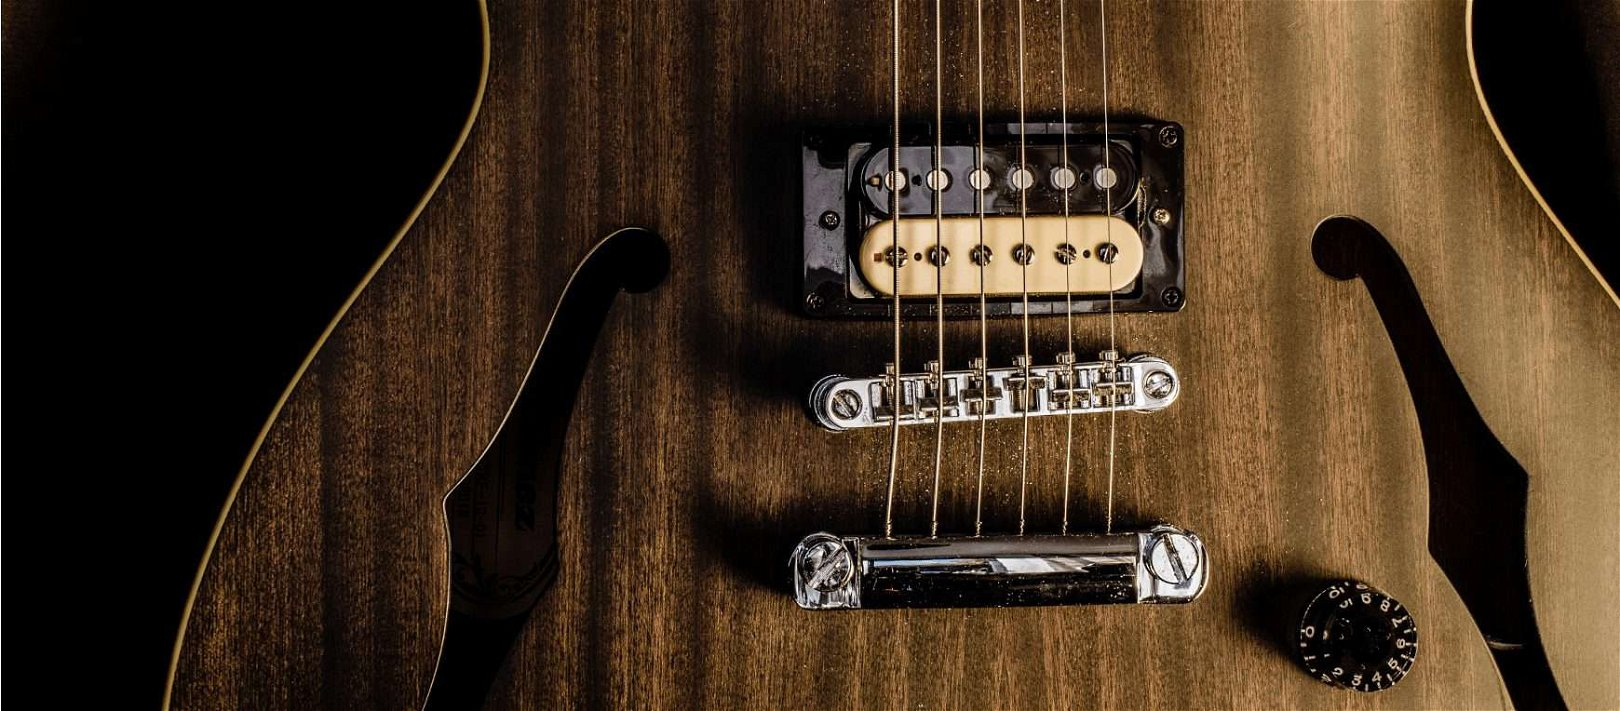 Is It Safe To Take All The Strings Off Your Guitar At Once?